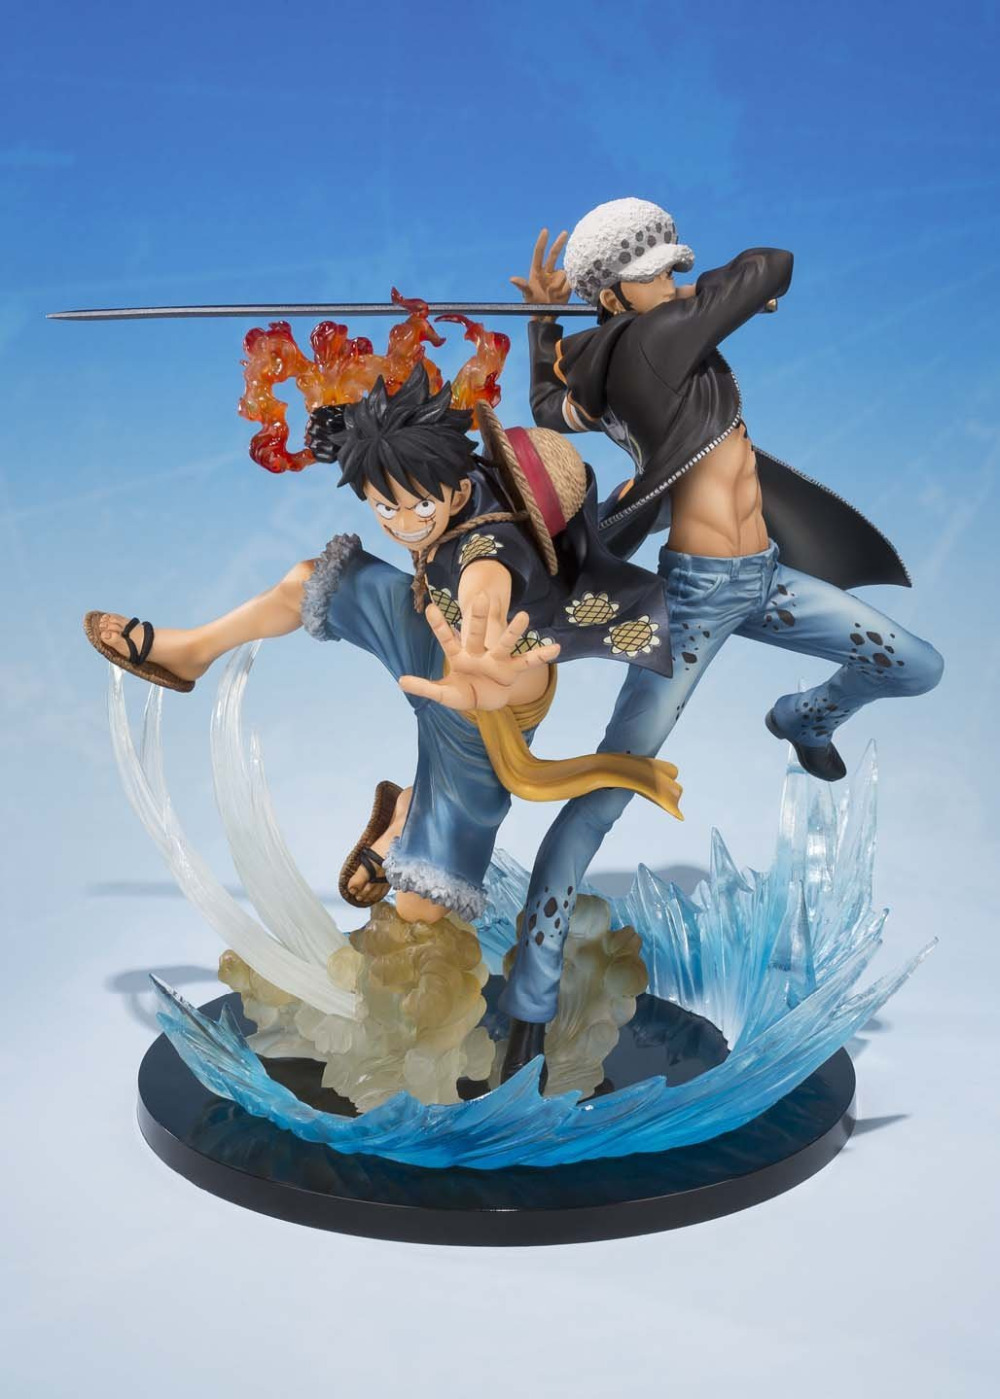 One Piece Luffy Trafalgar Law 5th Anime Collectible Action Figures PVC Collection toys for christmas gift with Retail box image